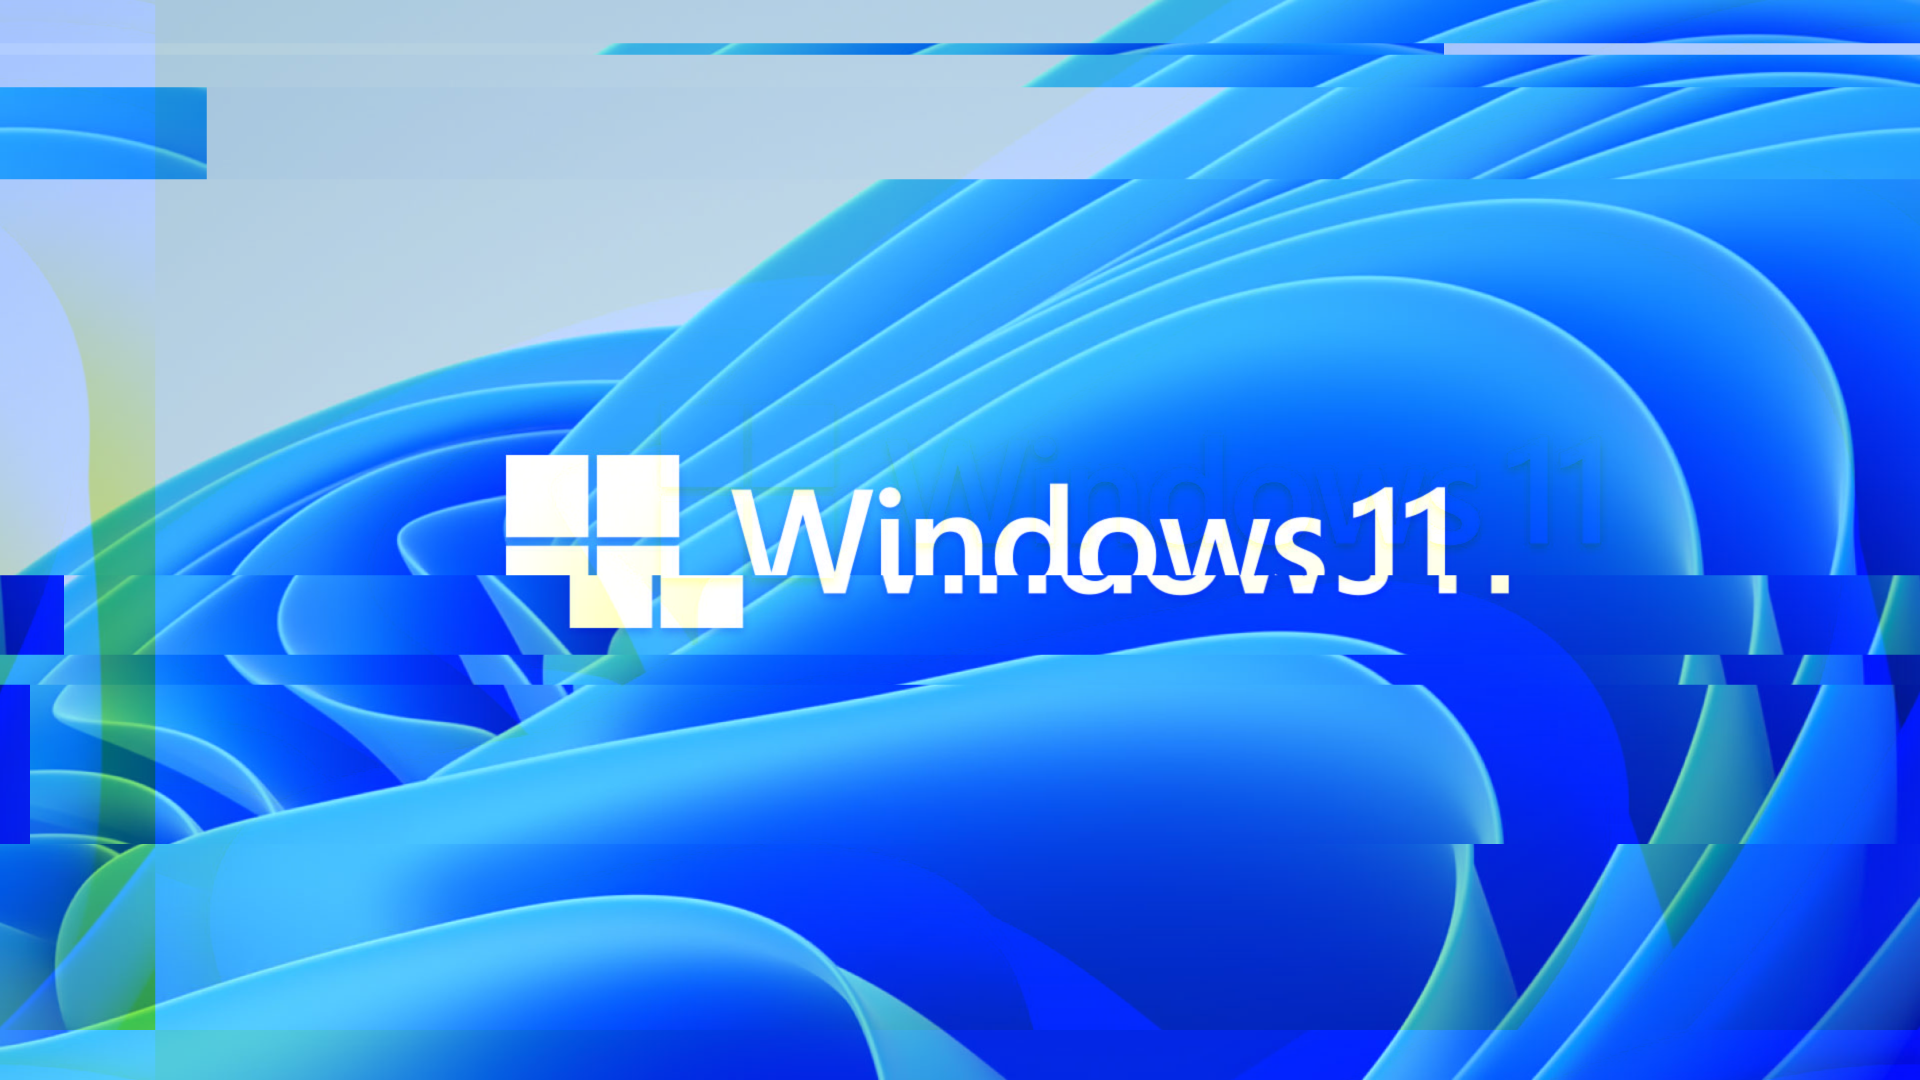 A glitchy version of the Windows 11 image